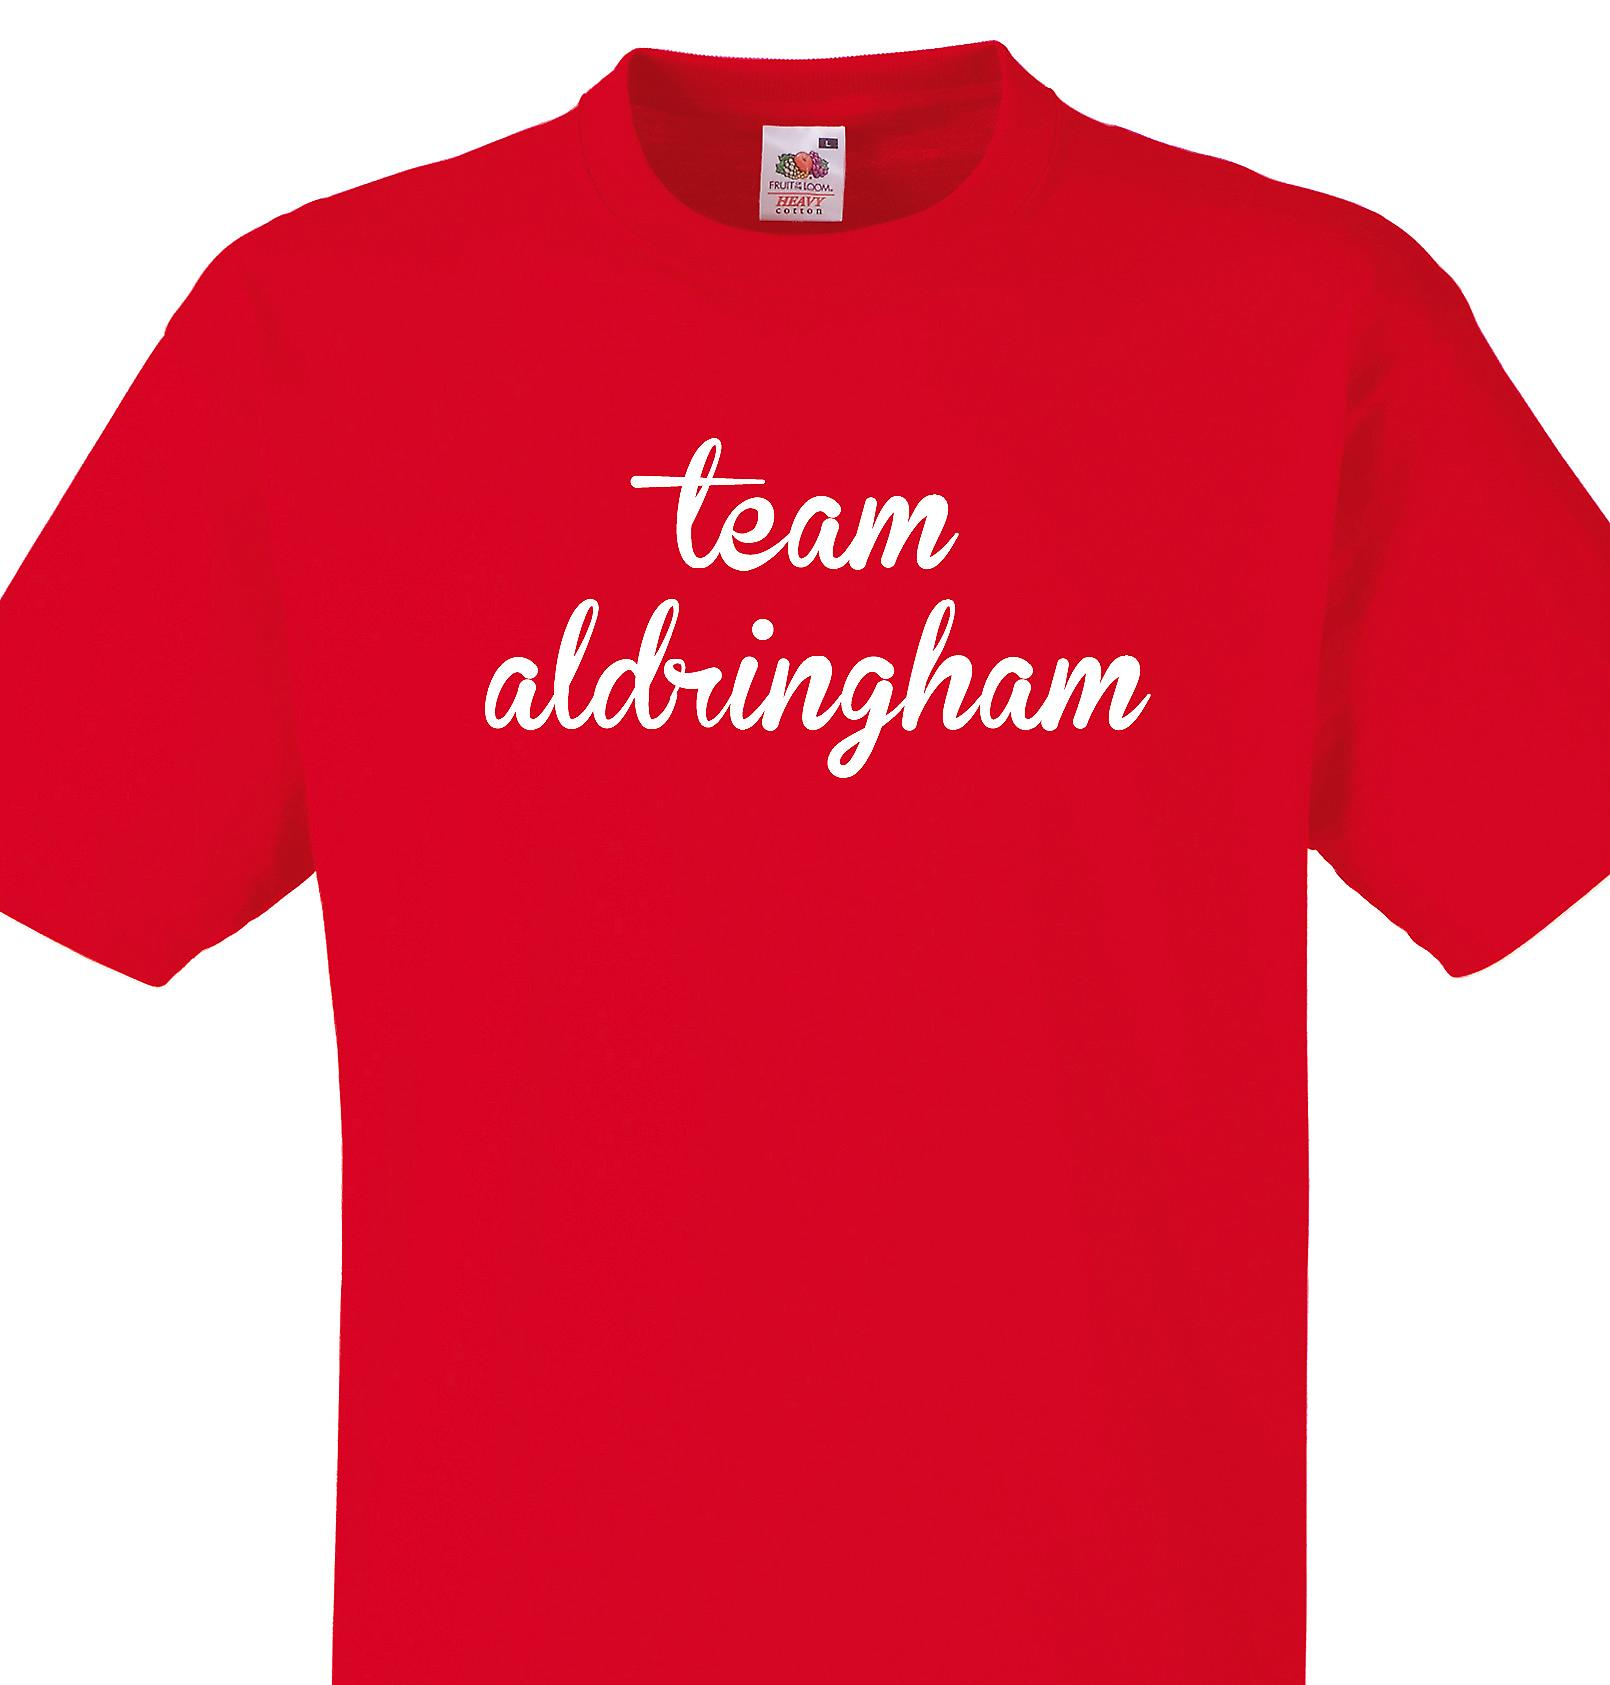 Team Aldringham Red T shirt